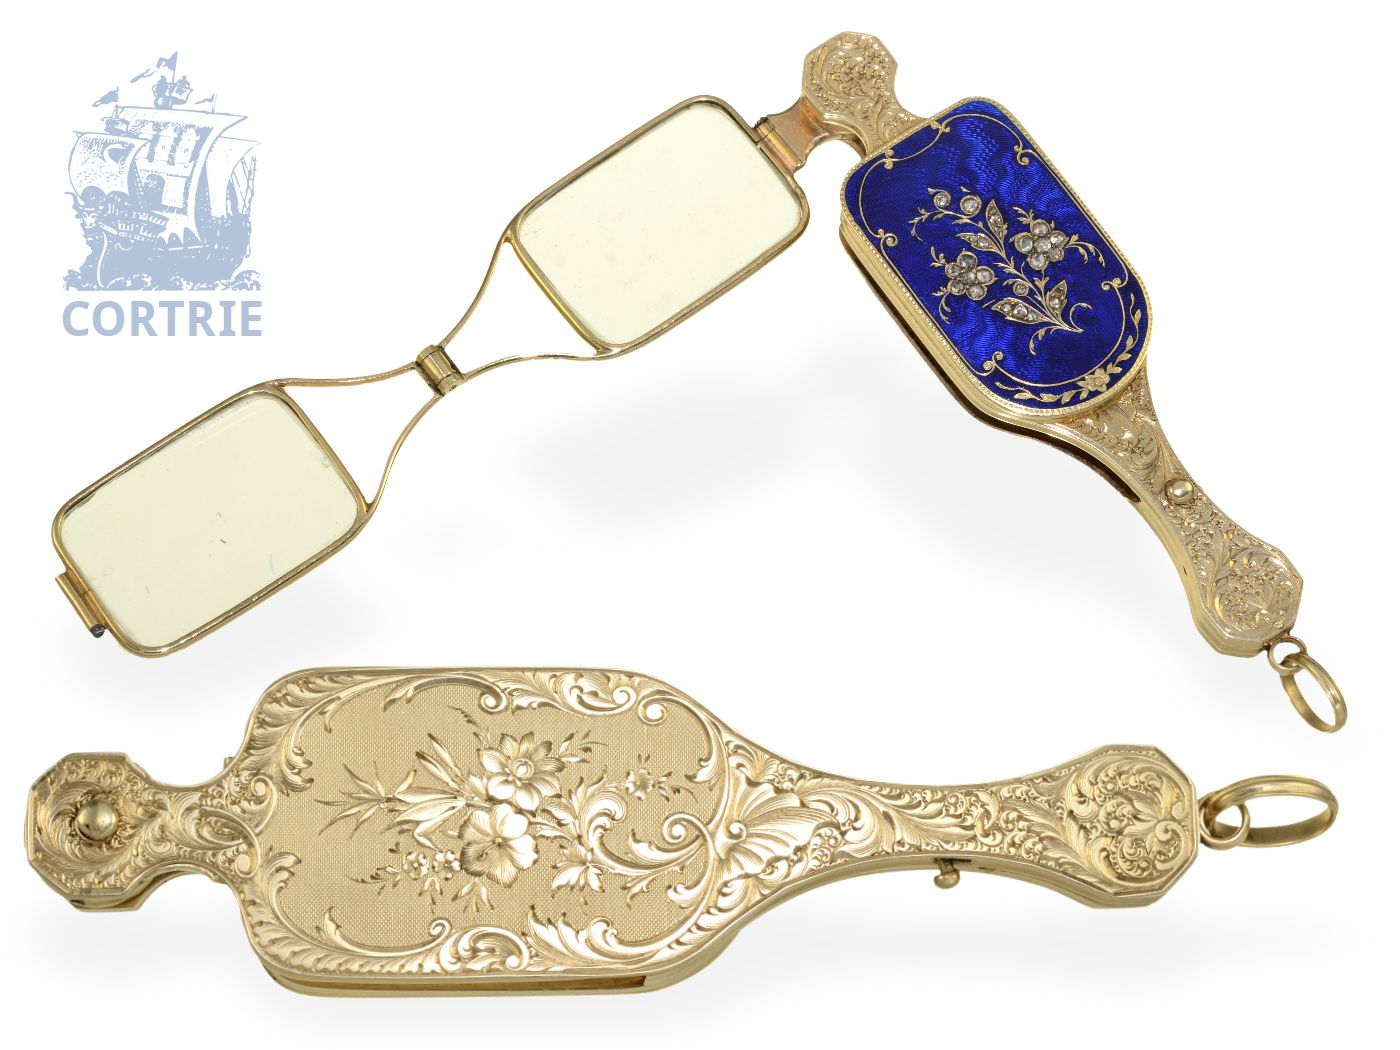 Pendant watch/form watch: very fine Geneva gold/enamel Lorgnette with diamonds and hidden watch, probably Bautte Geneve ca. 1830-